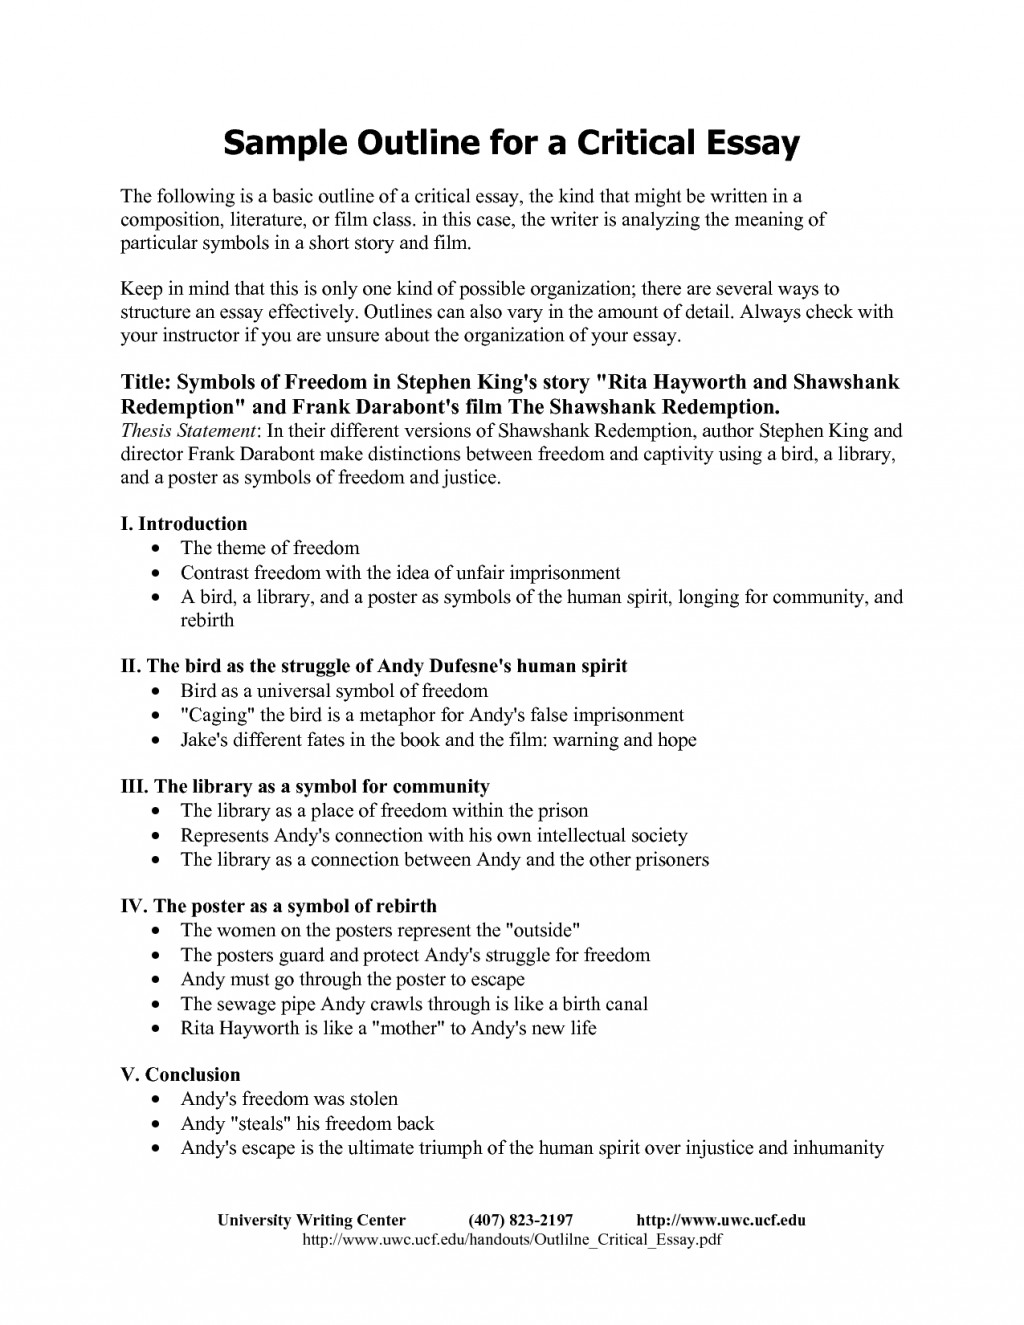 001 Critical Essay Outline Format 130831 Example How To Begin Amazing A Review Structure Response Large